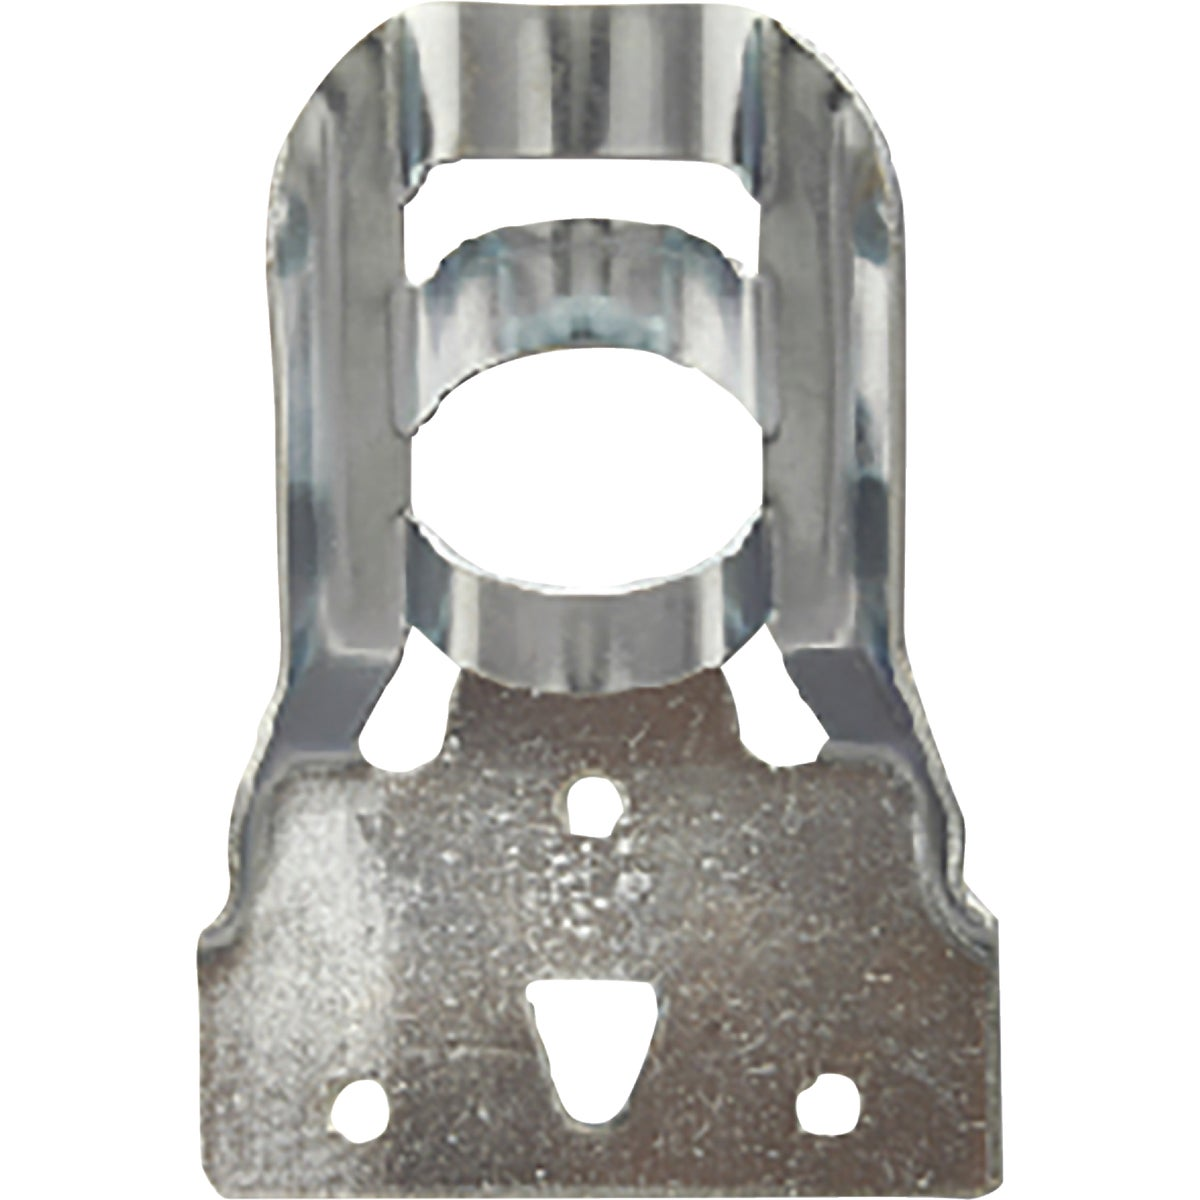 FLAG POLE BRACKET - SB2-1 by Valley Forge Flag